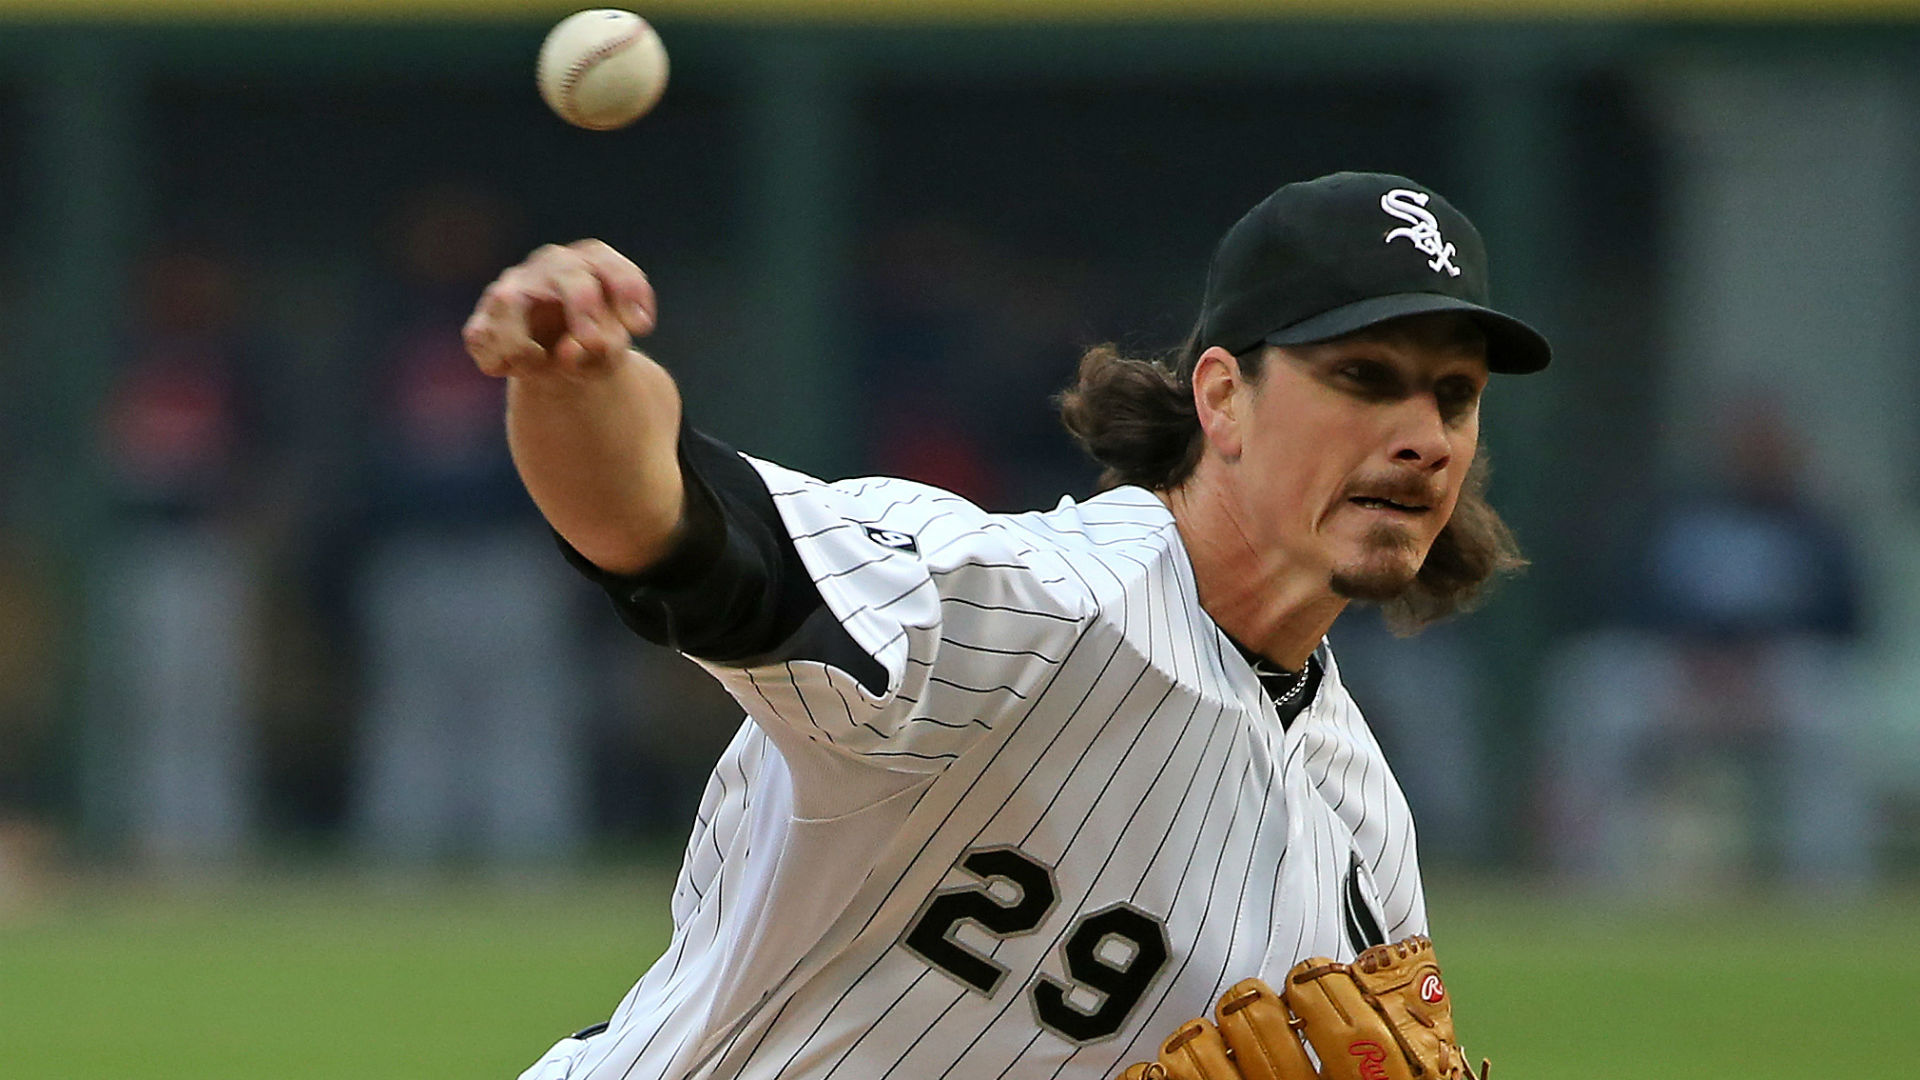 Forget Cole Hamels, the pitcher the Pirates need is Jeff Samardzija